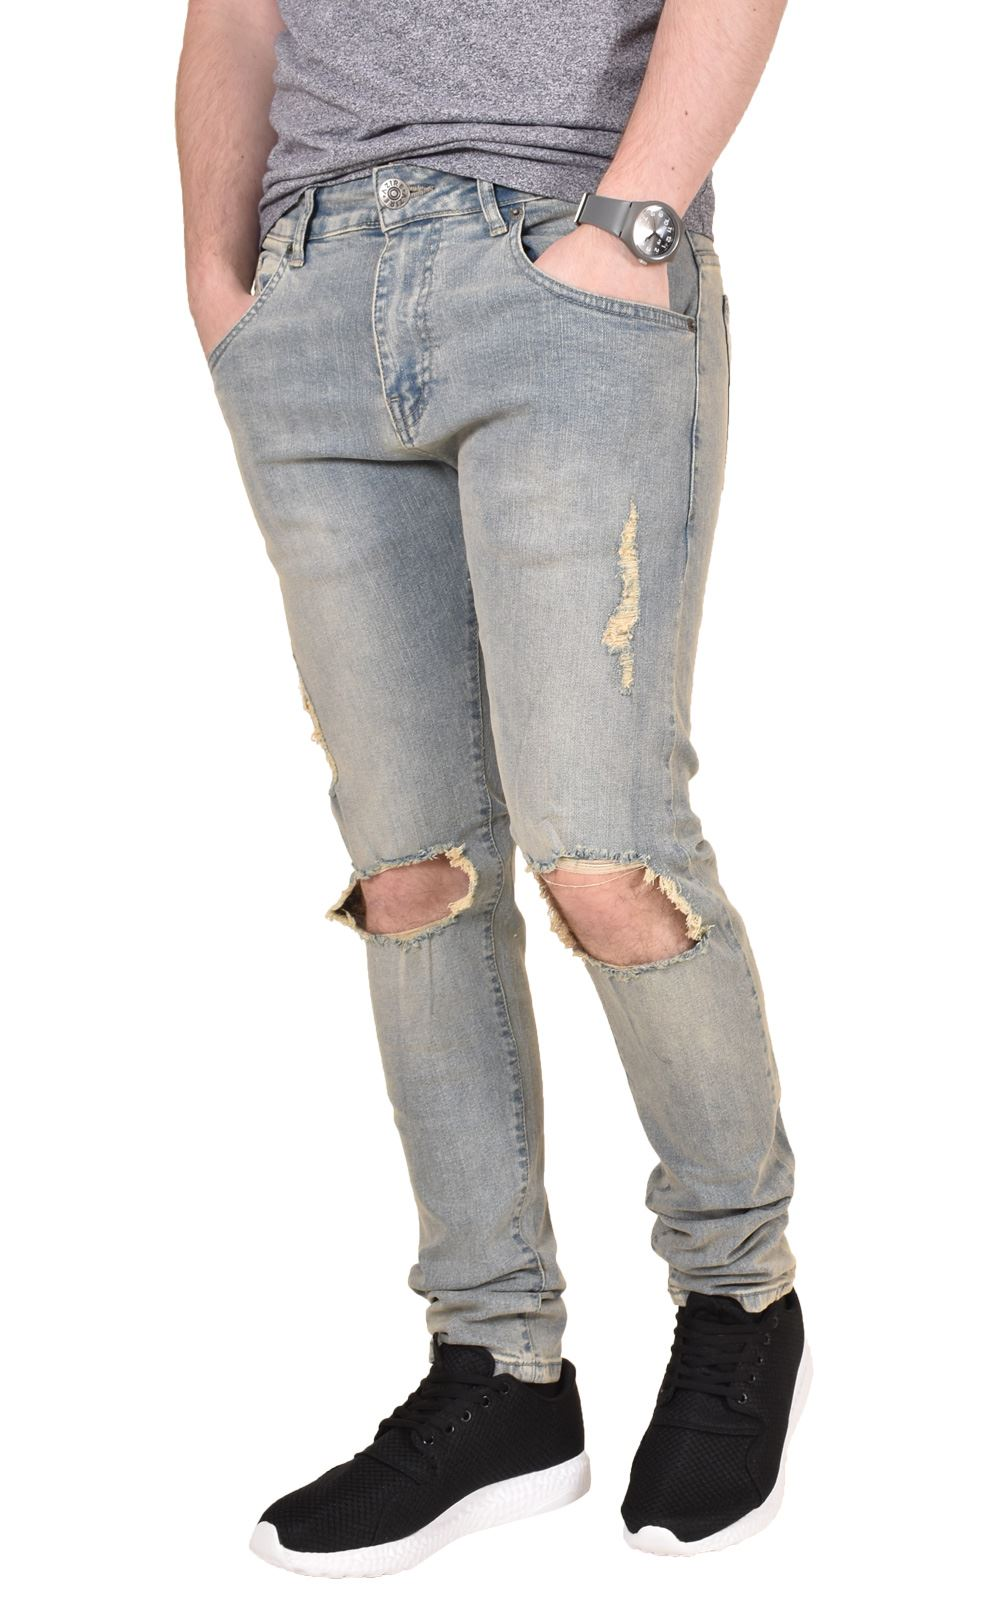 Mens-Ripped-Jeans-Skinny-Slim-Fit-Stretch-Distressed-Denim-Pants-Trousers-28-40 thumbnail 8